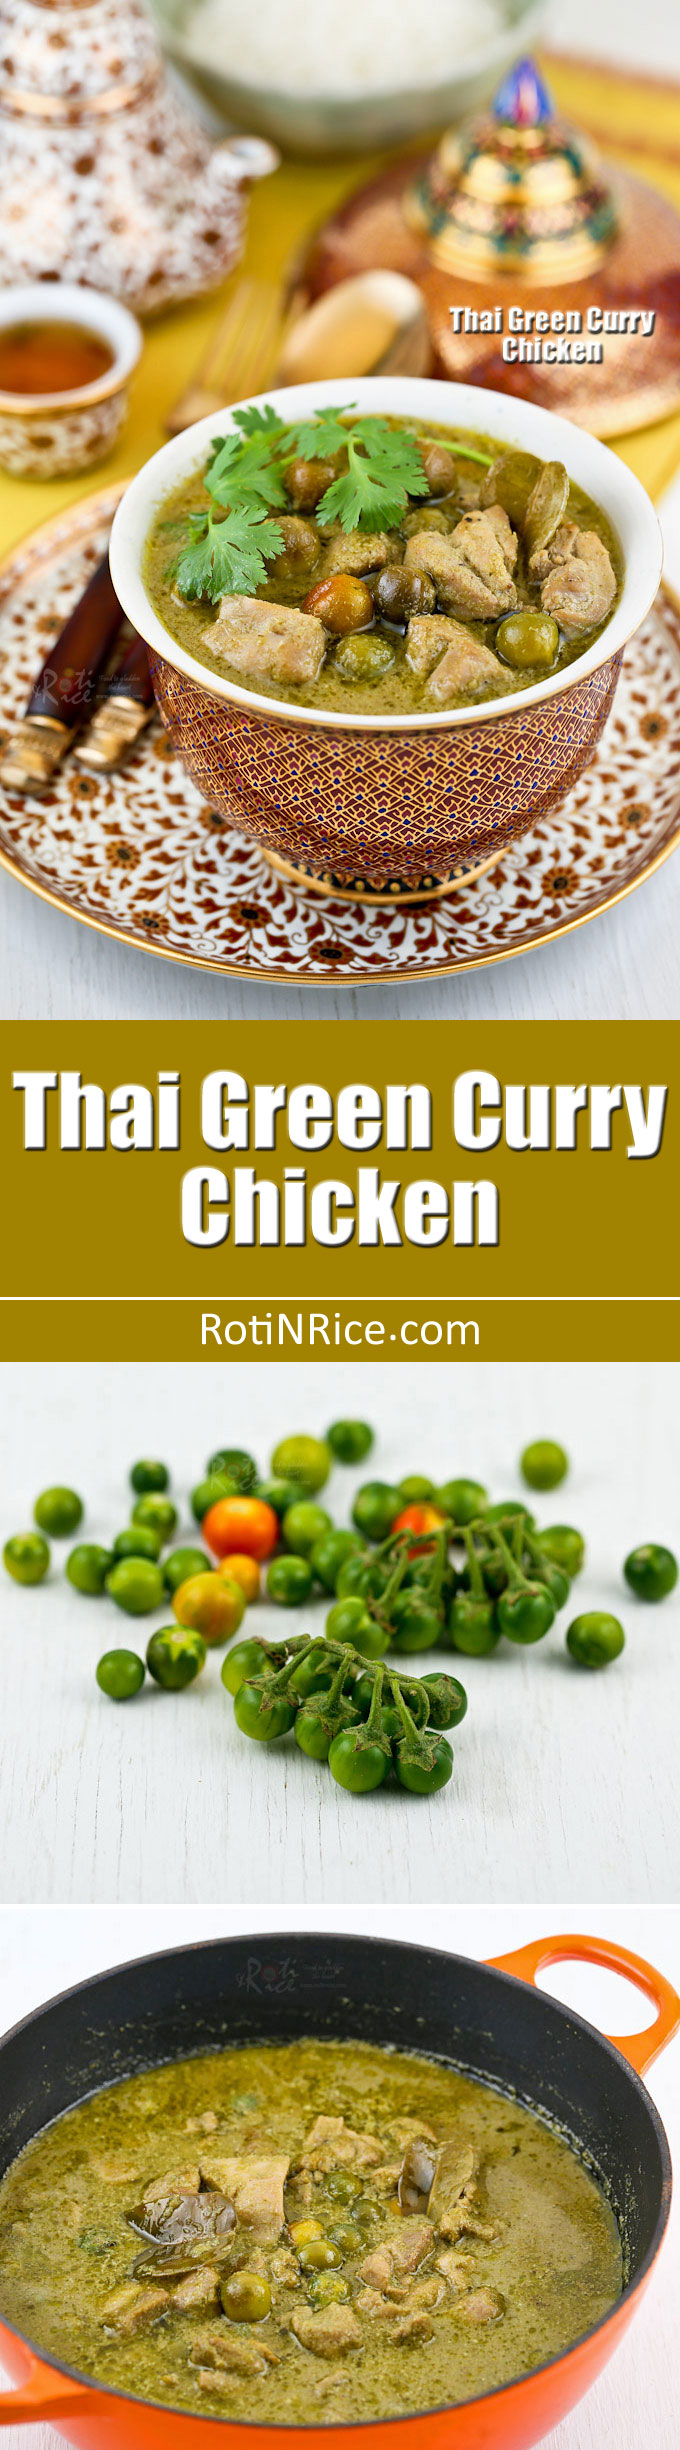 Make your own fragrant green curry spice paste from scratch for this Thai Green Curry Chicken with pea eggplants. So delicious with steamed Jasmine rice. | RotiNRice.com